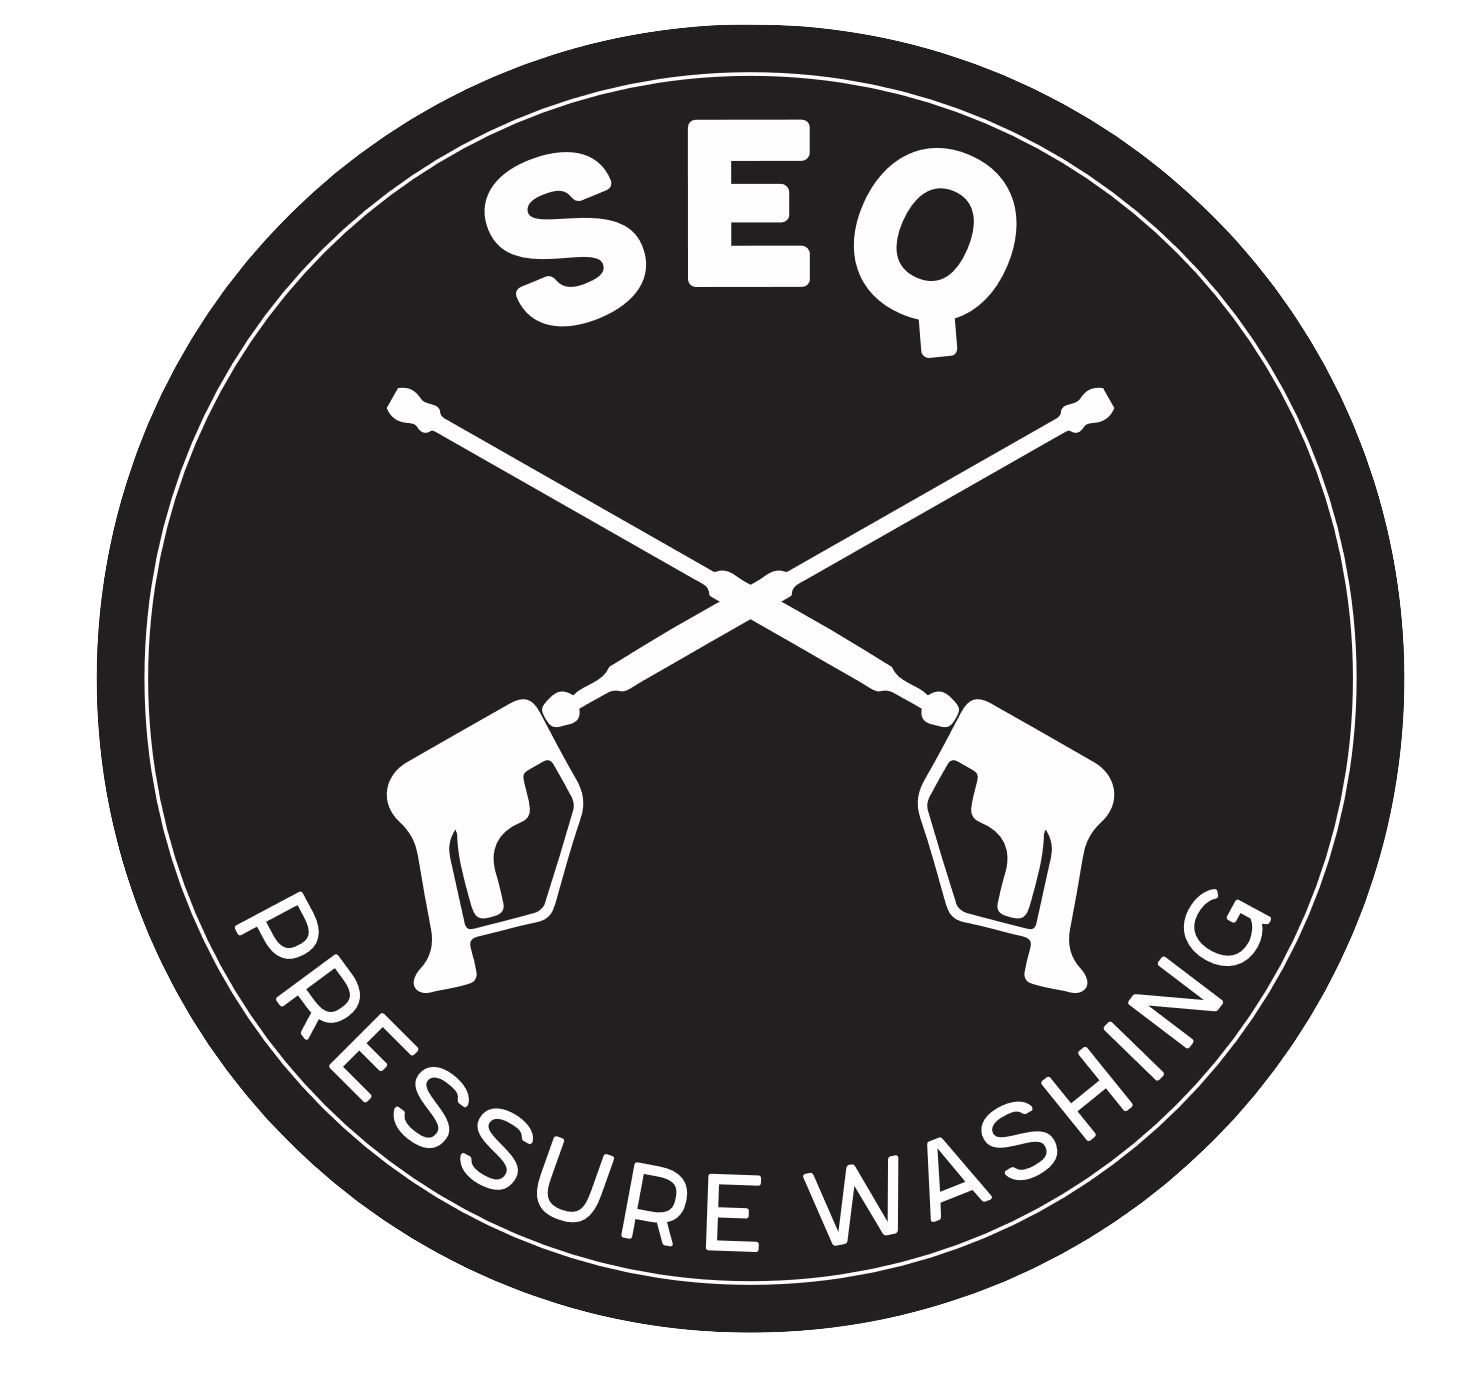 SEQ Pressure Washing